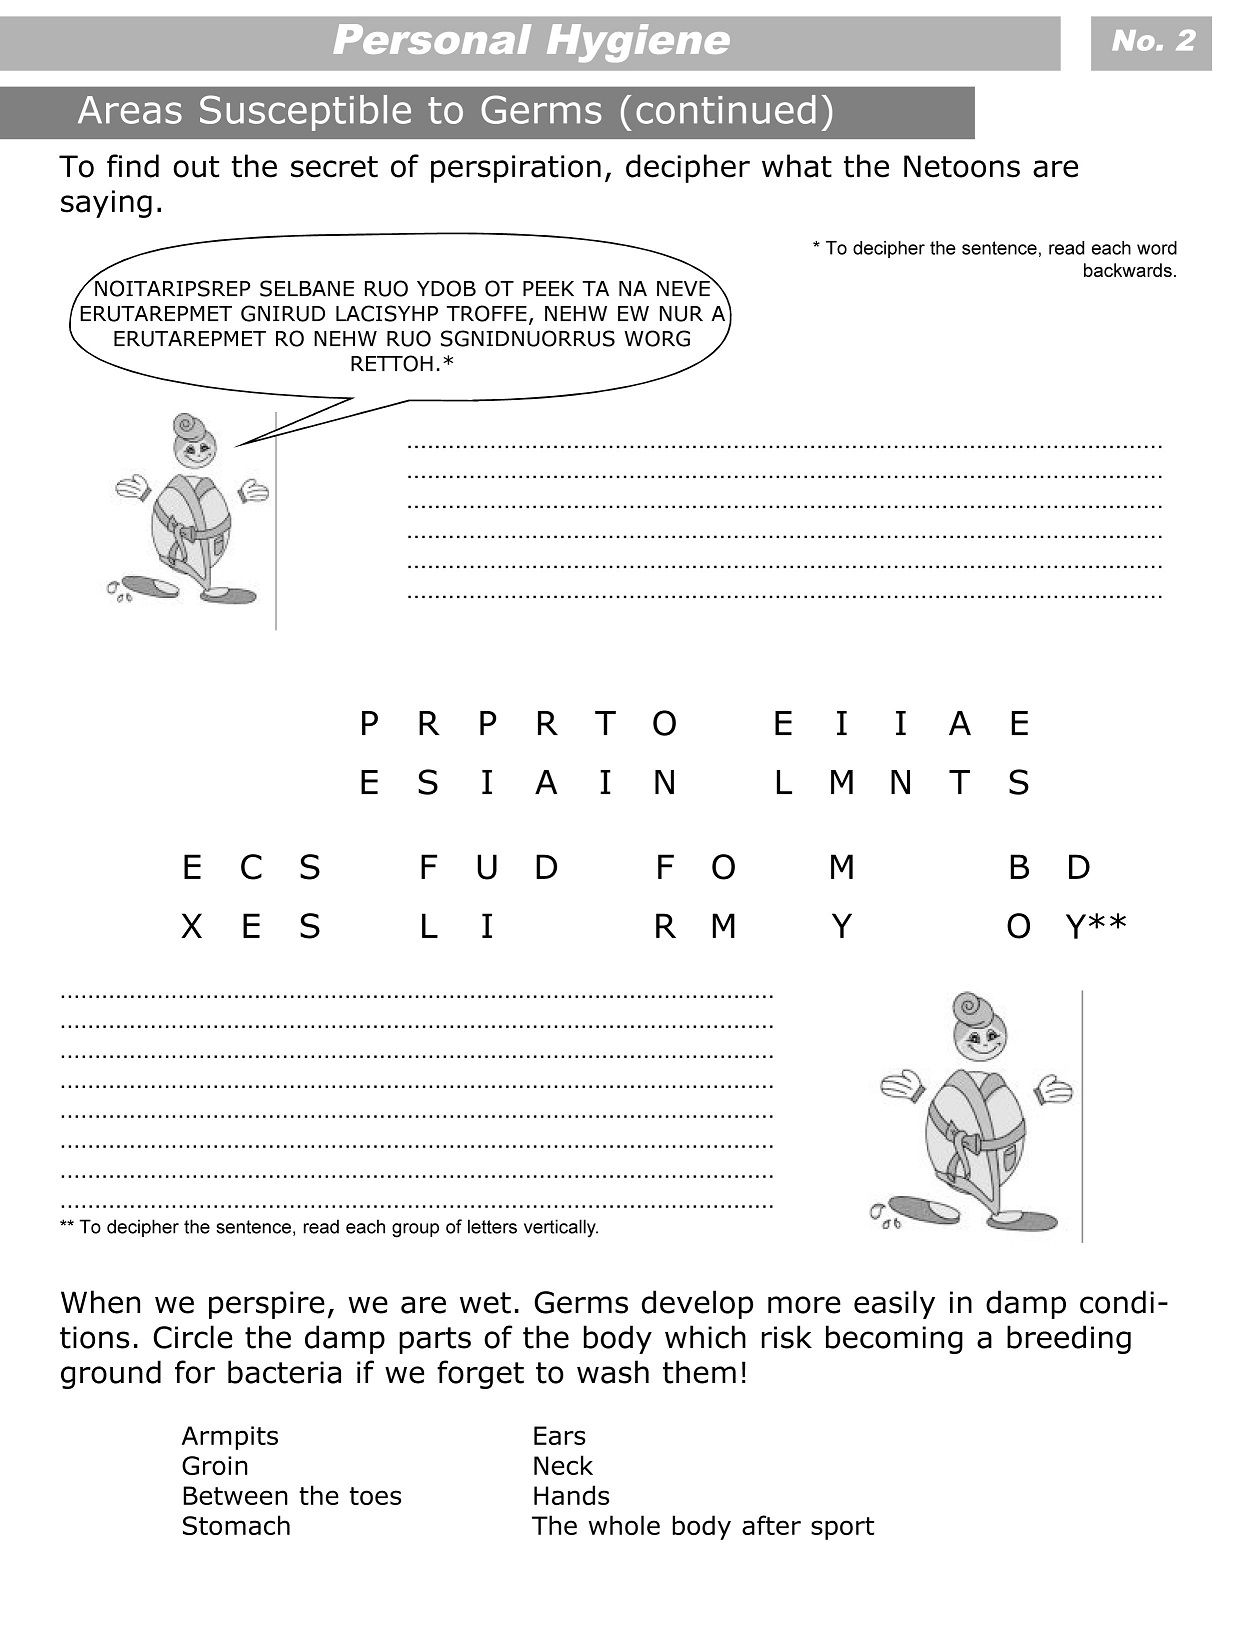 Printables Personal Hygiene Worksheets For Adults personal hygiene worksheet 2 plan and worksheets for kids level 3 2